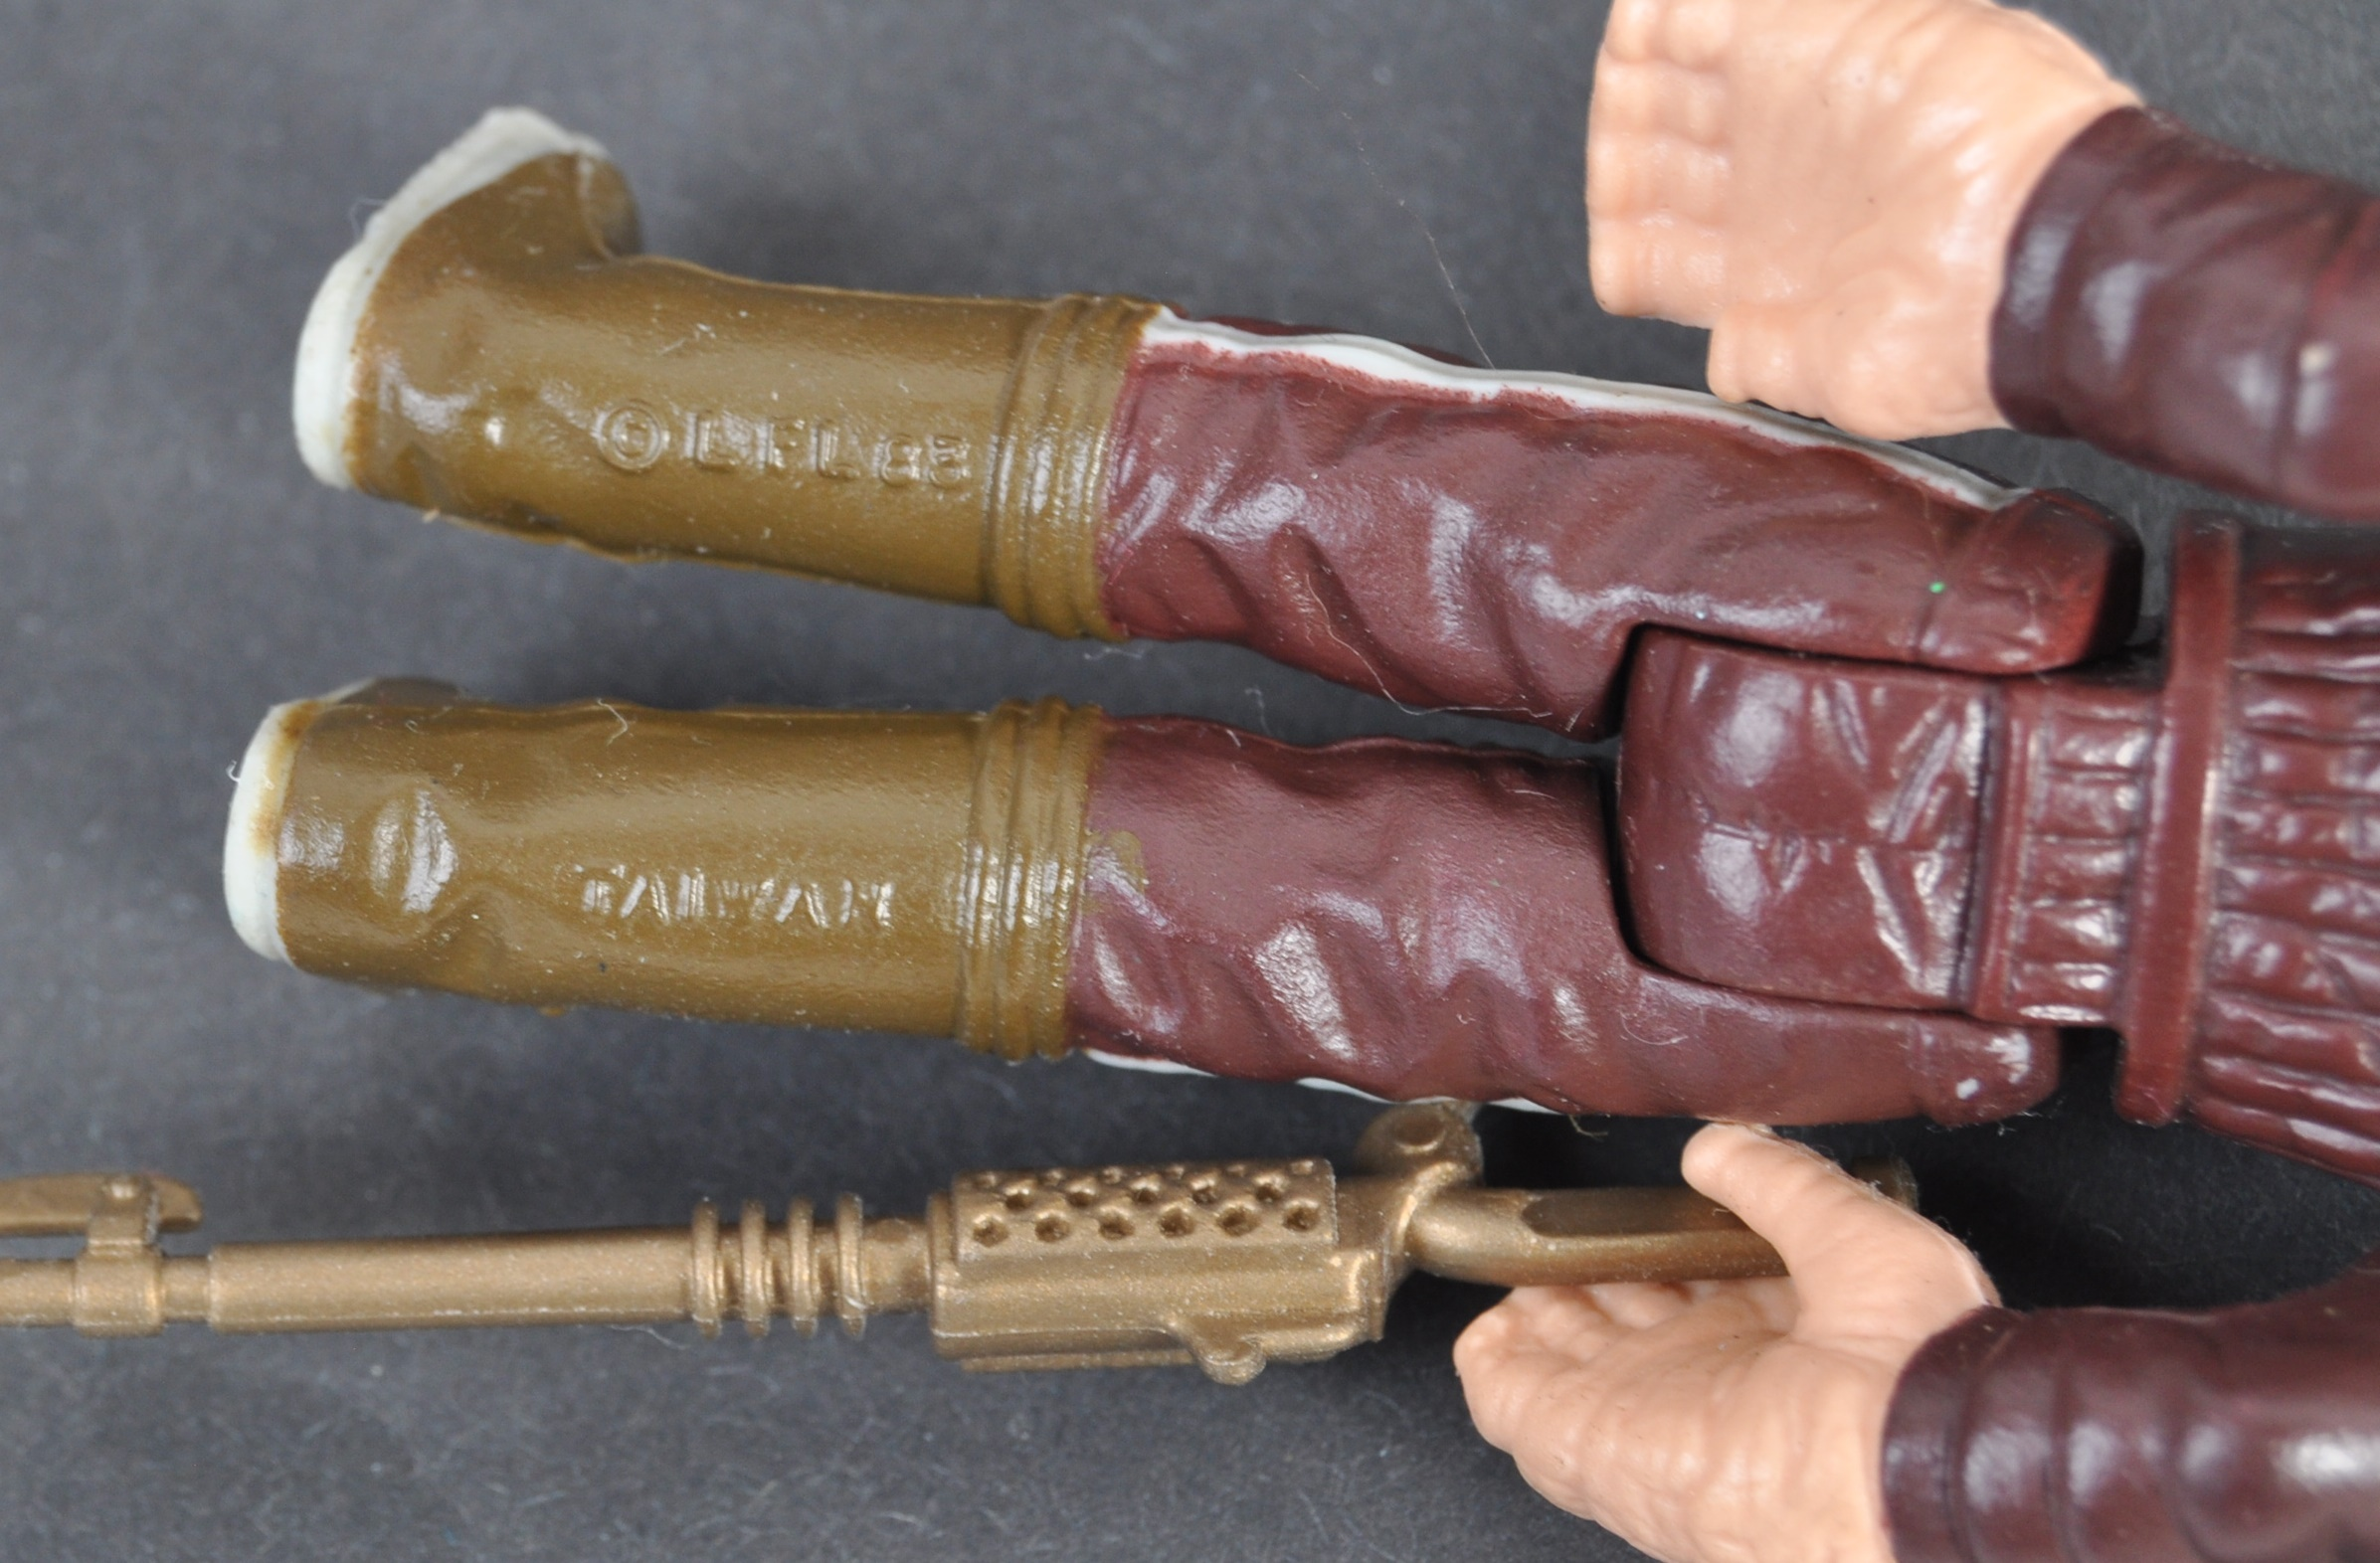 STAR WARS ACTION FIGURES - COLLECTION OF ASSORTED - Image 6 of 12